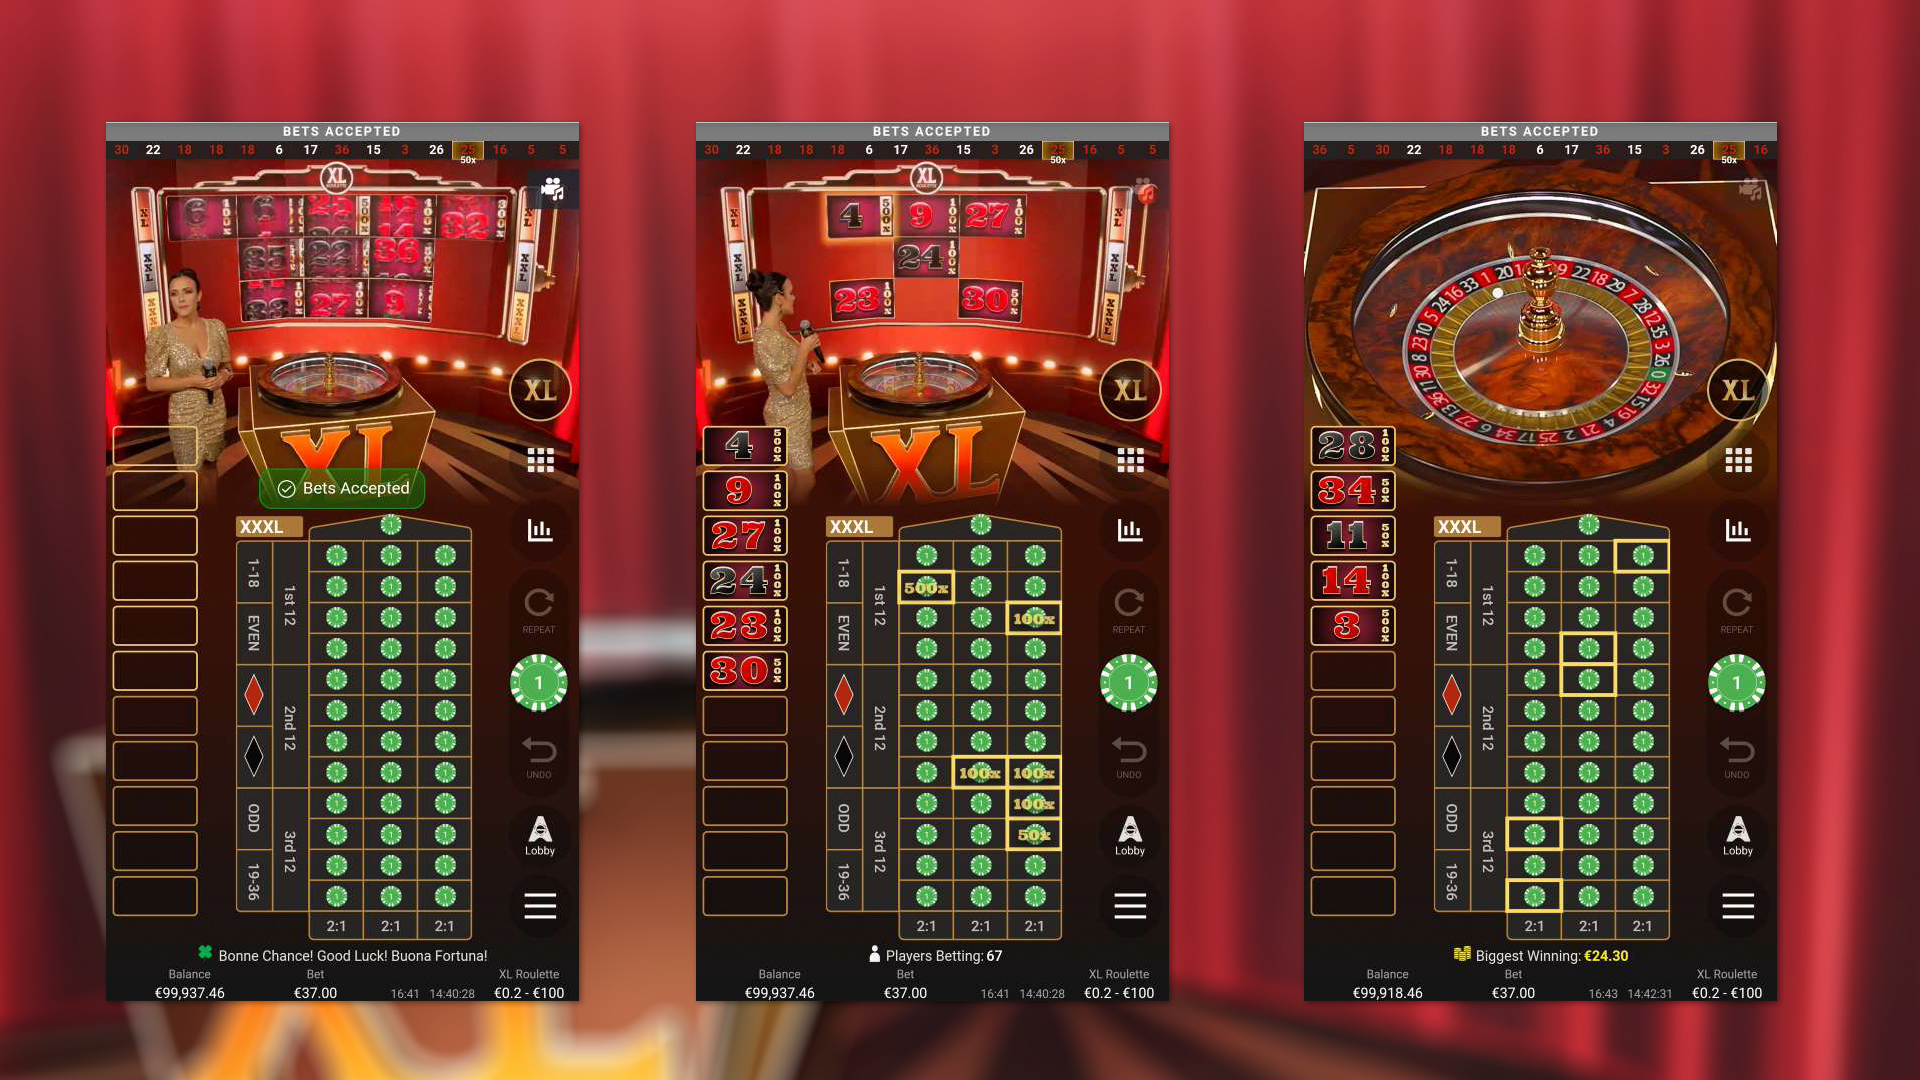 How to play XL Roulette